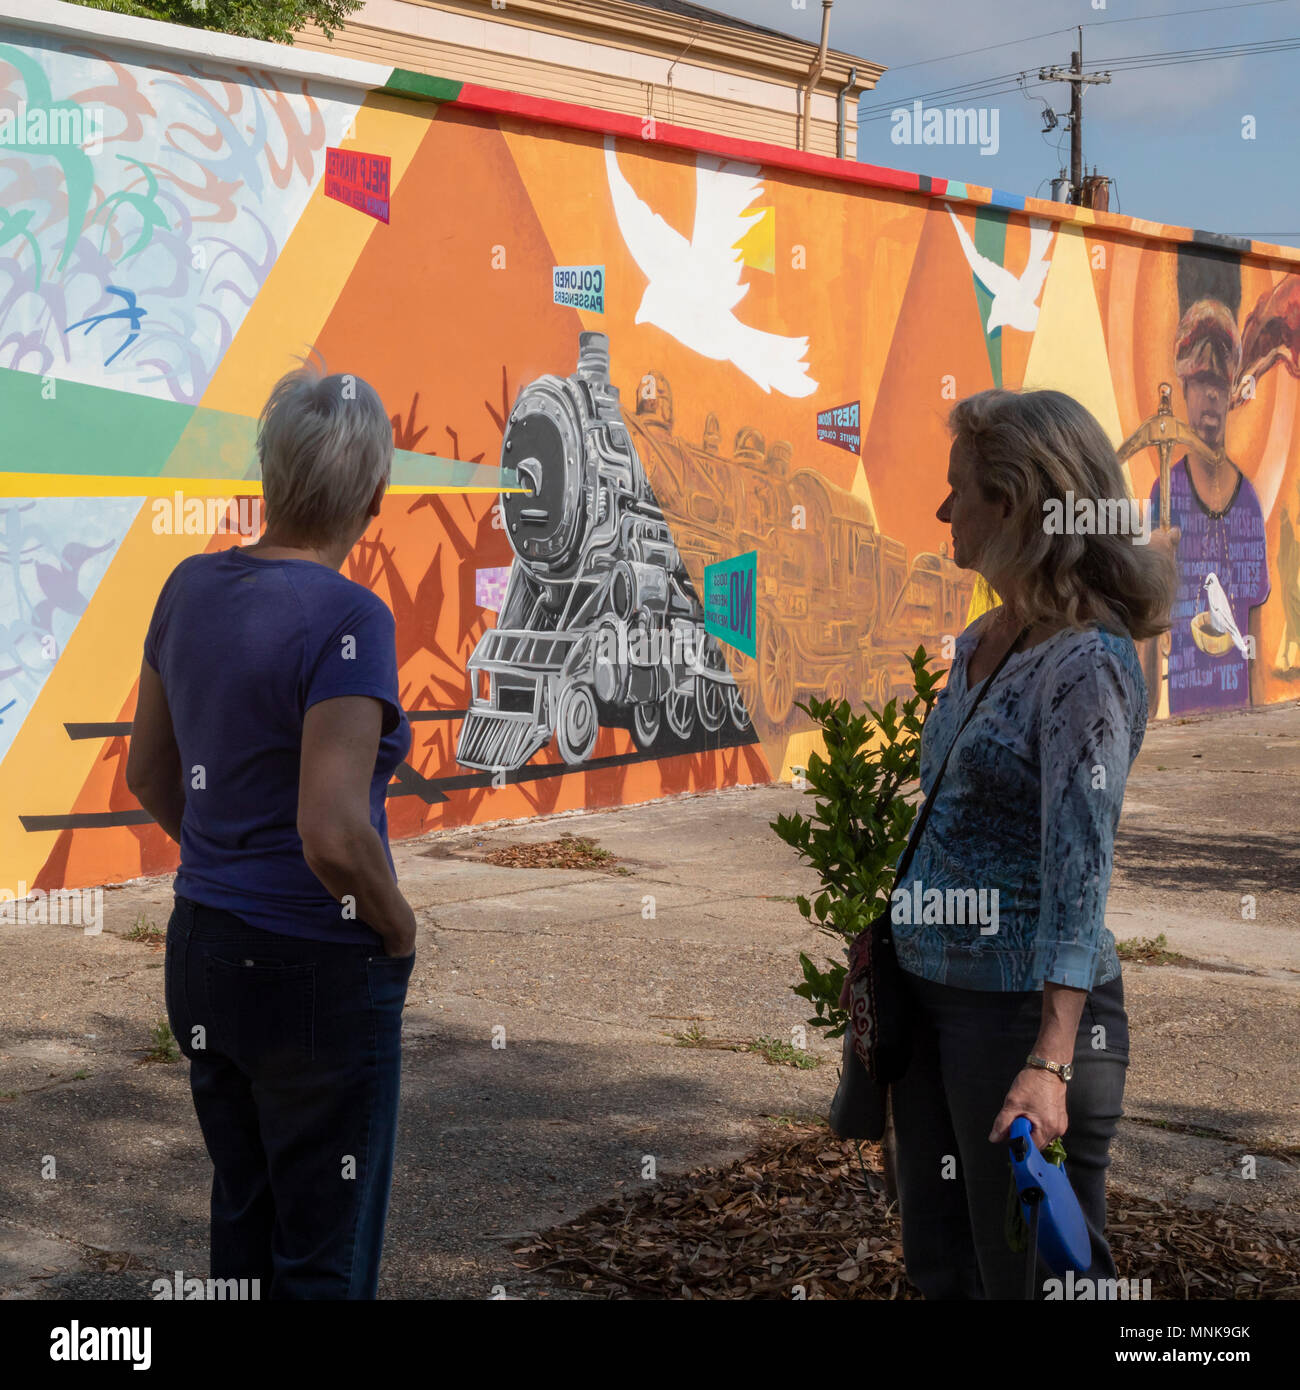 New Orleans, Louisiana - A painting by Ayo Scott honors Homer Plessy and the civil rights movement. Plessy was arrested on this spot in 1892. - Stock Image